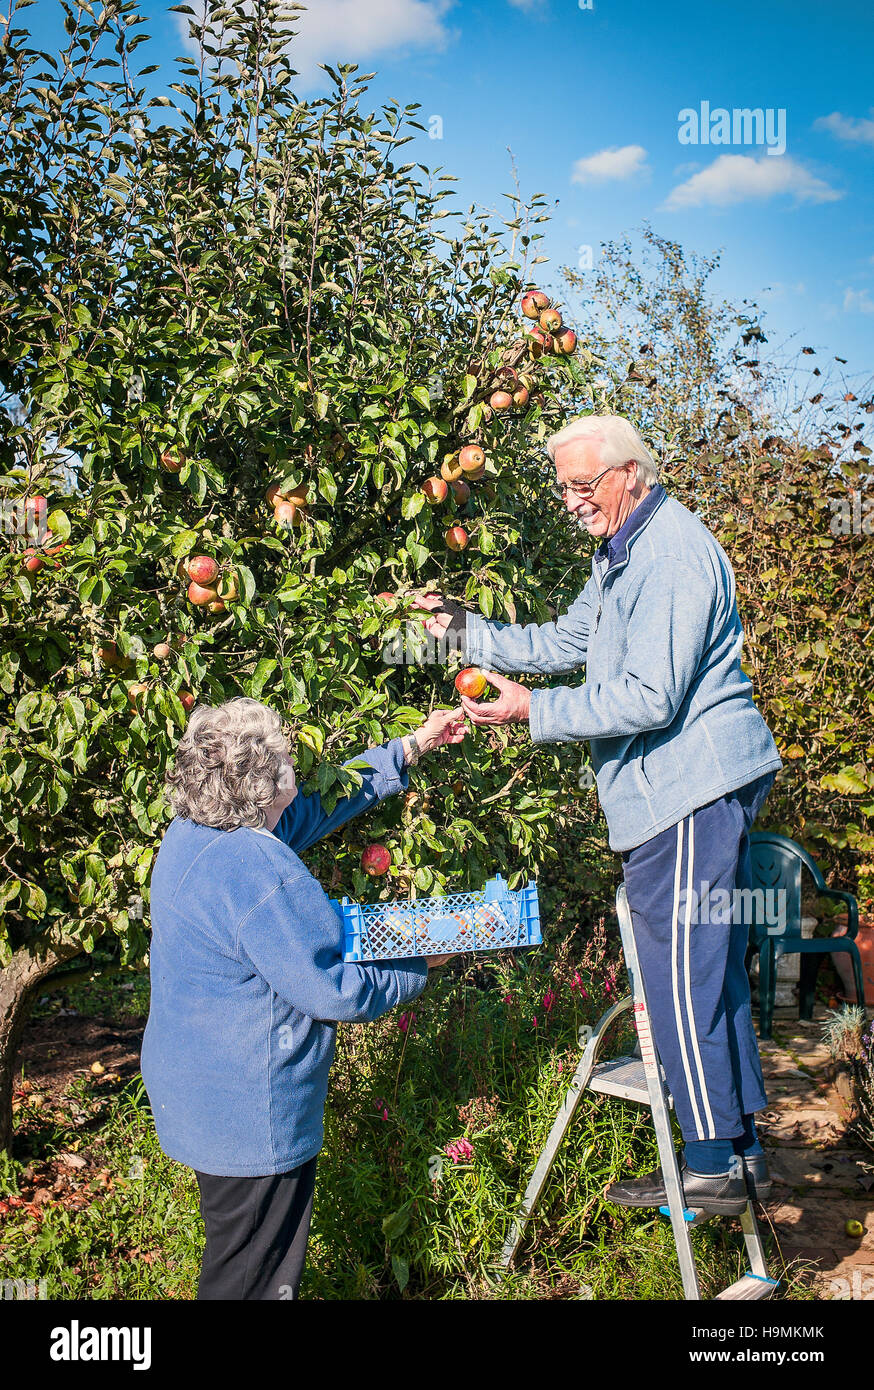 Two pensioners harvesting apples in their garden - Stock Image